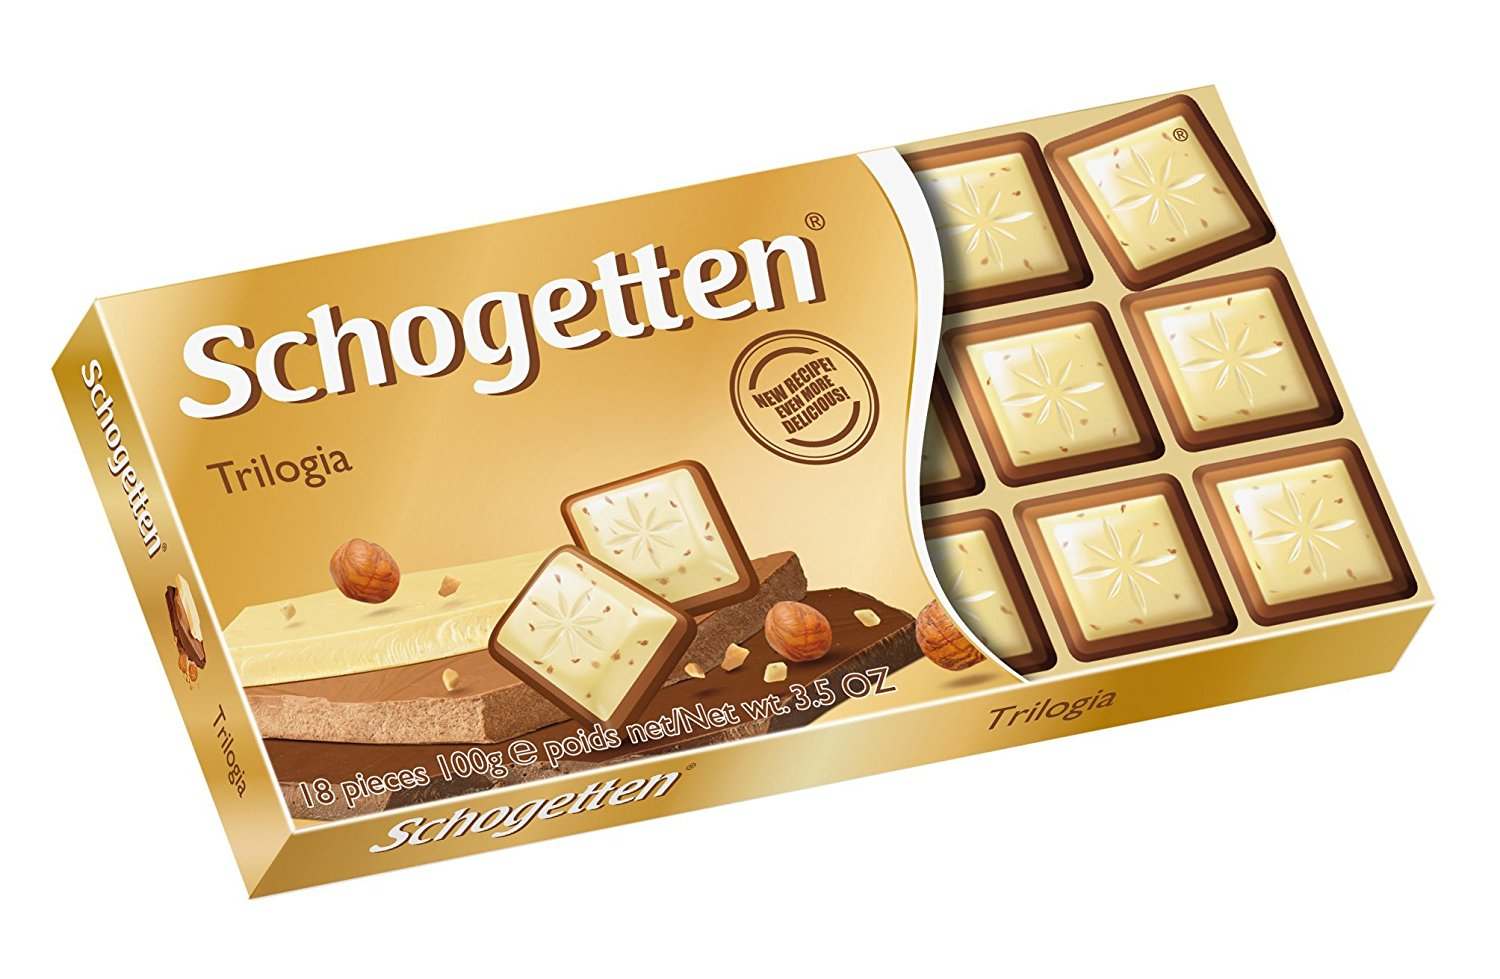 Buy Schogetten Ð Taste of the year Vanilla-Wafer